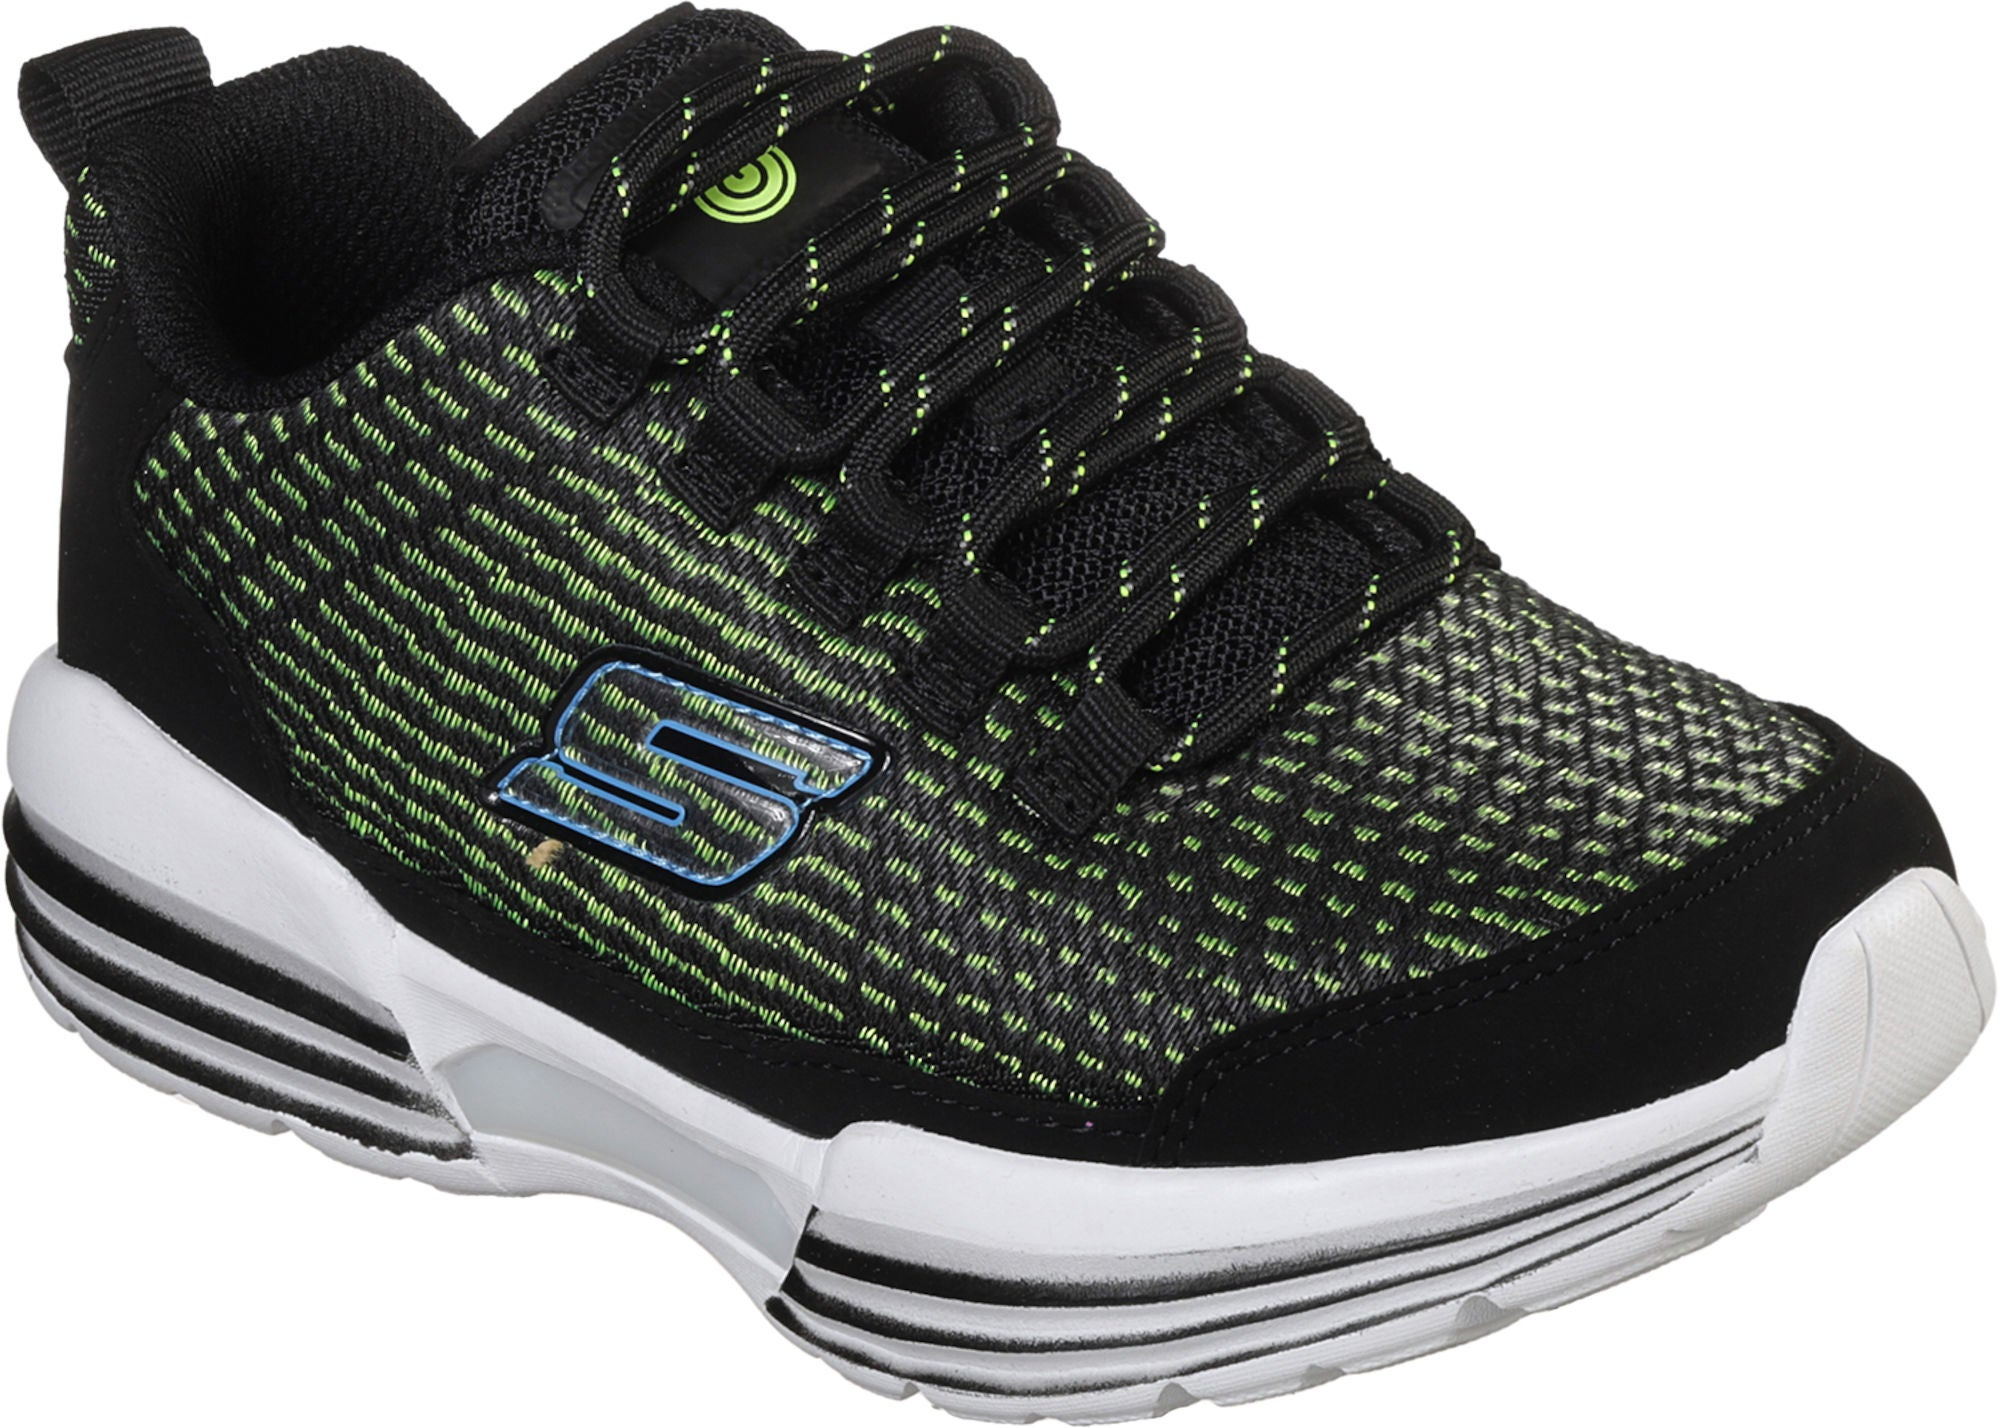 Skechers Hidden Lights Sneakers, Black/Lime 32